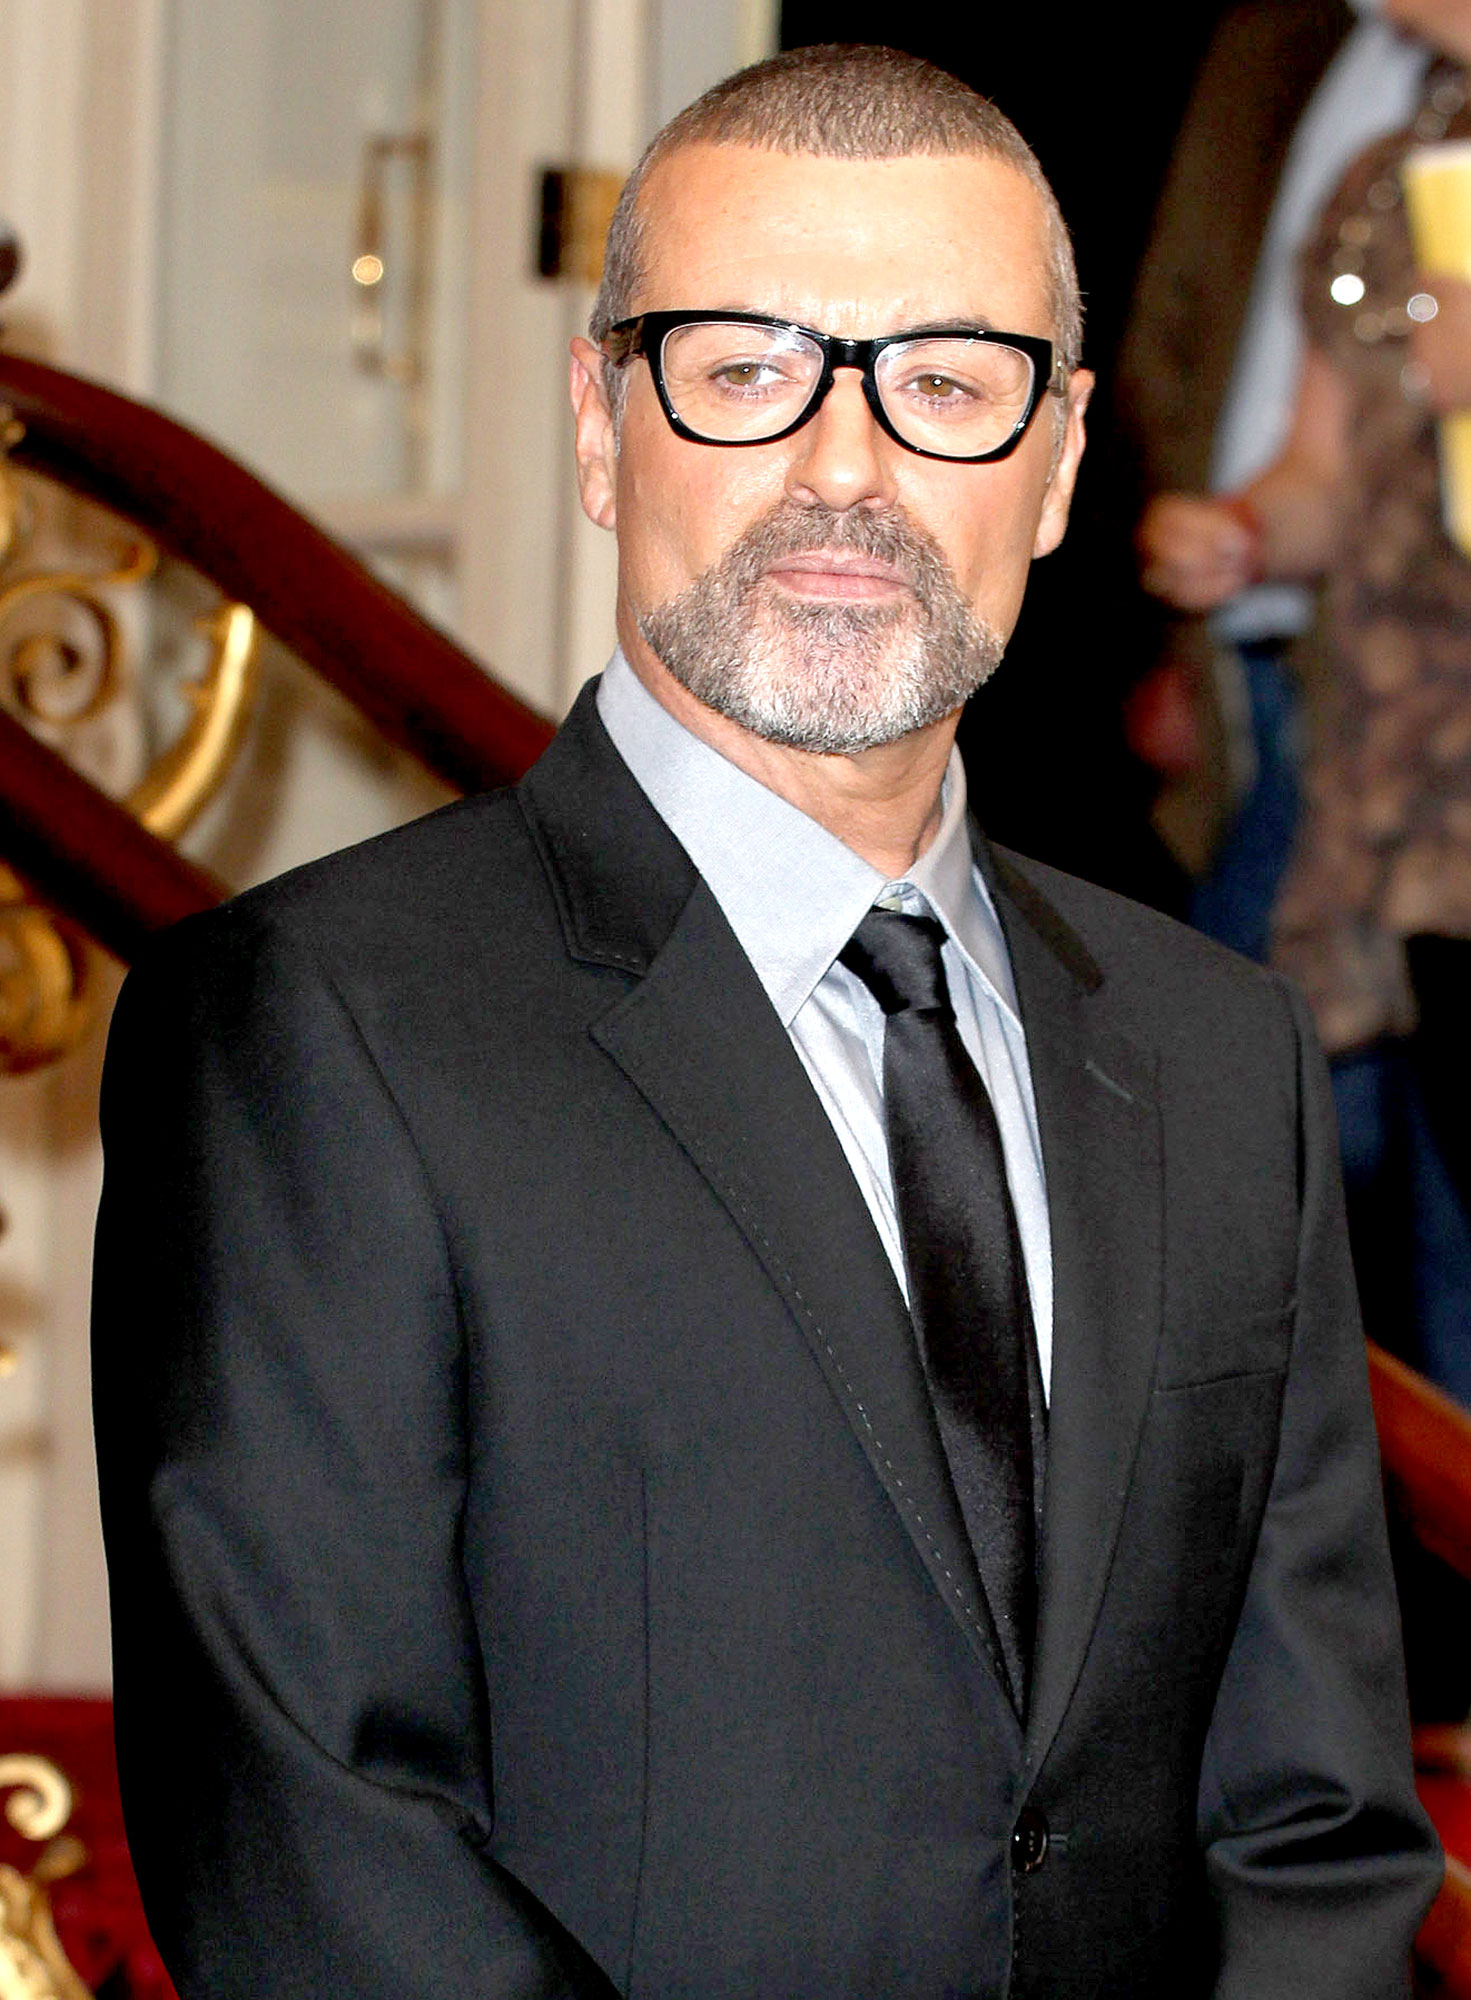 George Michael attends a press conference to announce his new European tour, Symphonica: The Orchestral Tour at The Royal Opera House on May 11, 2011 in London, England.